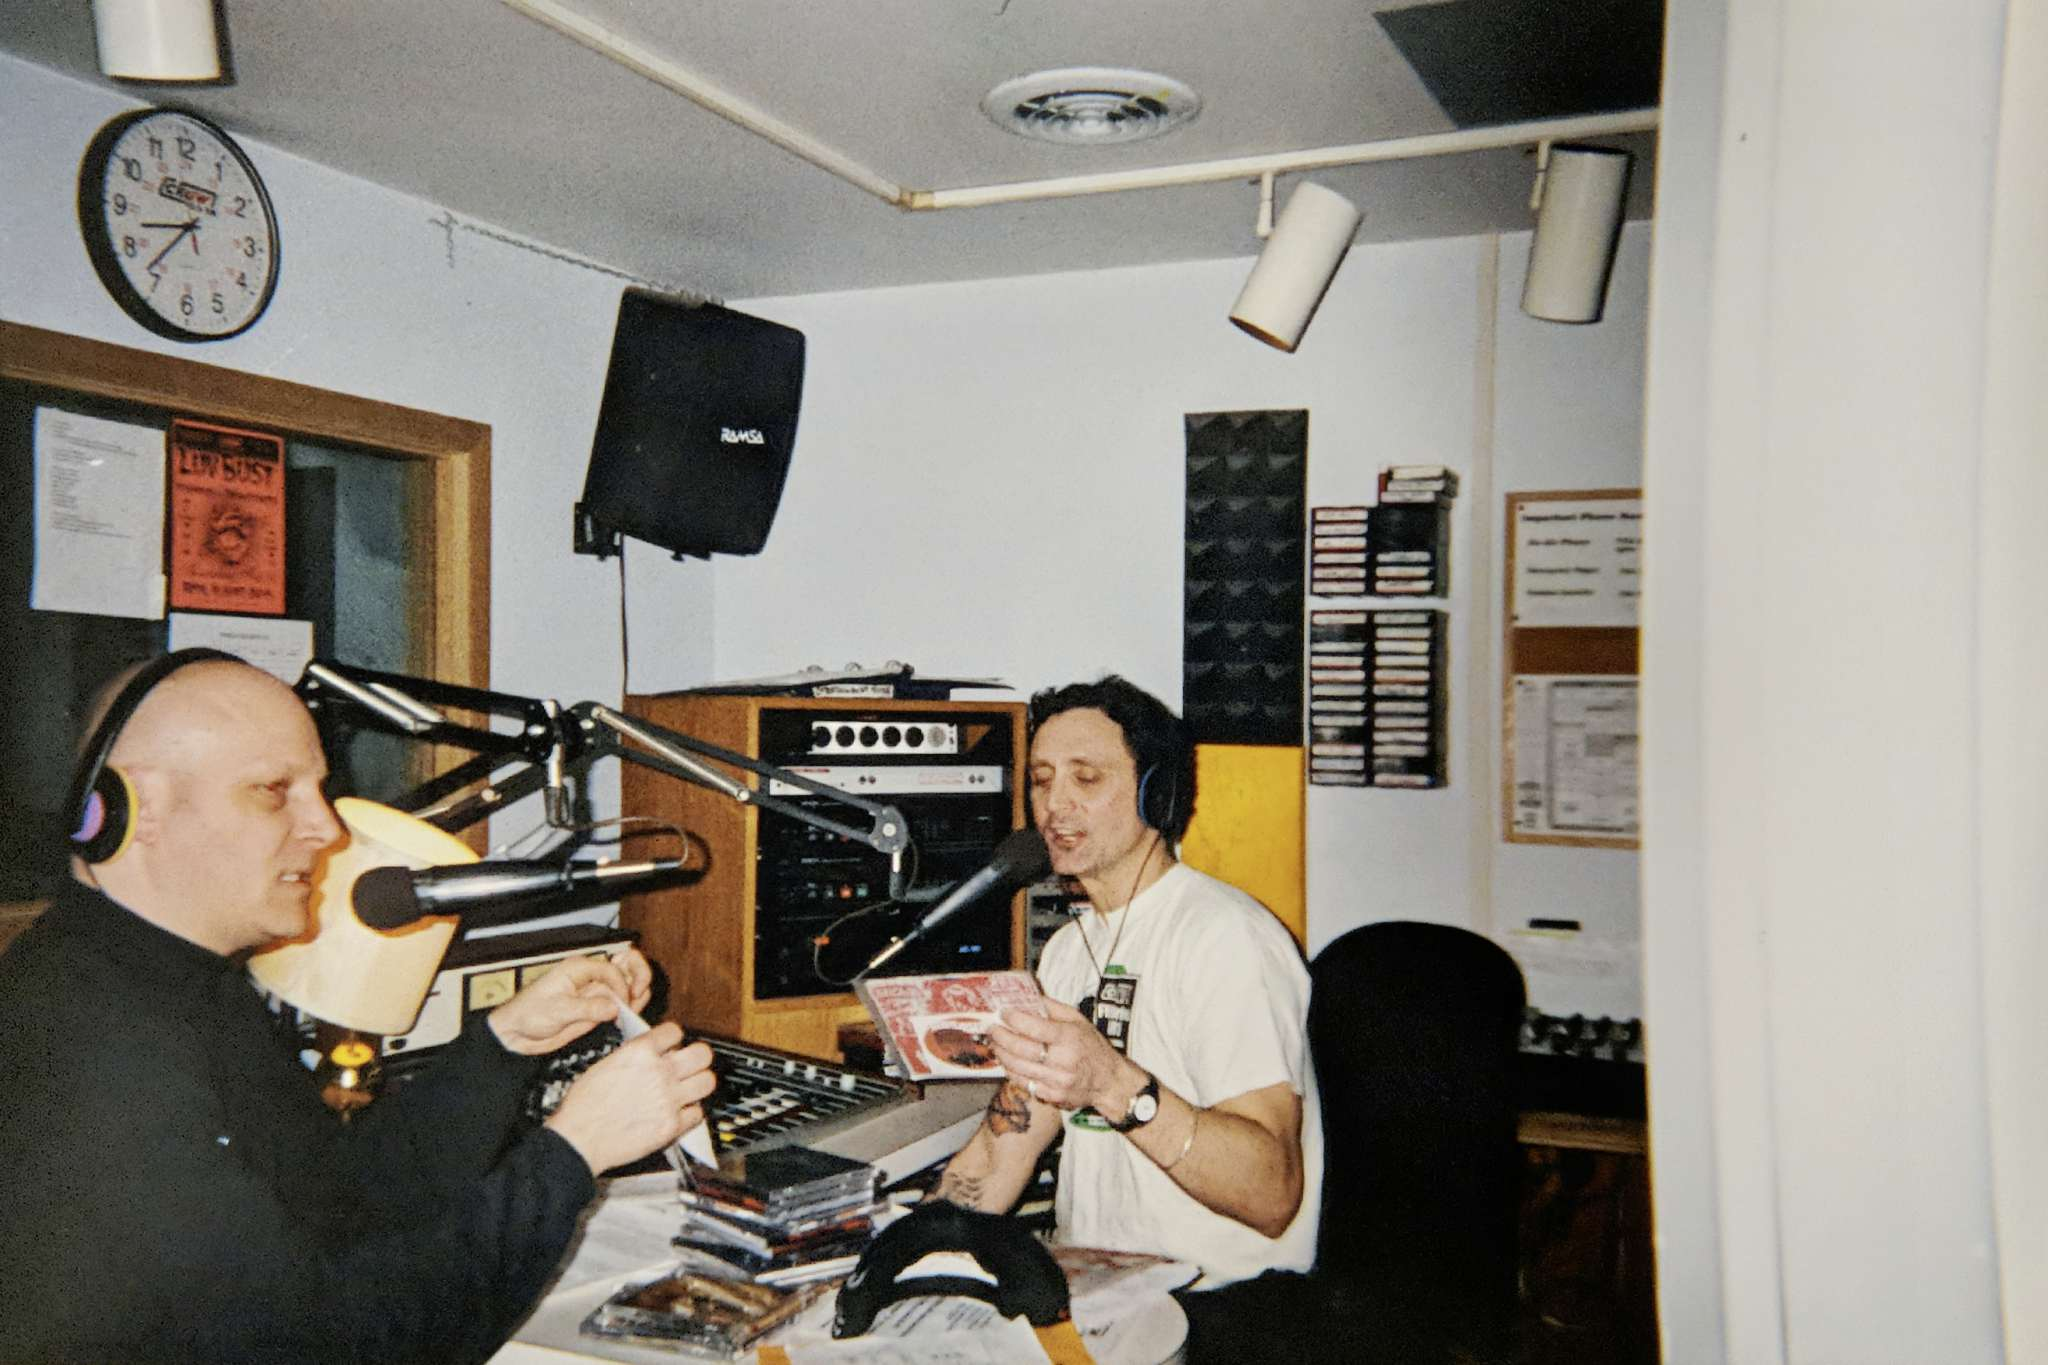 CKUW 95.9 FM volunteers Colin Bryce and Jeff Monk on air during the station's 2002 Fundrive fundraiser.